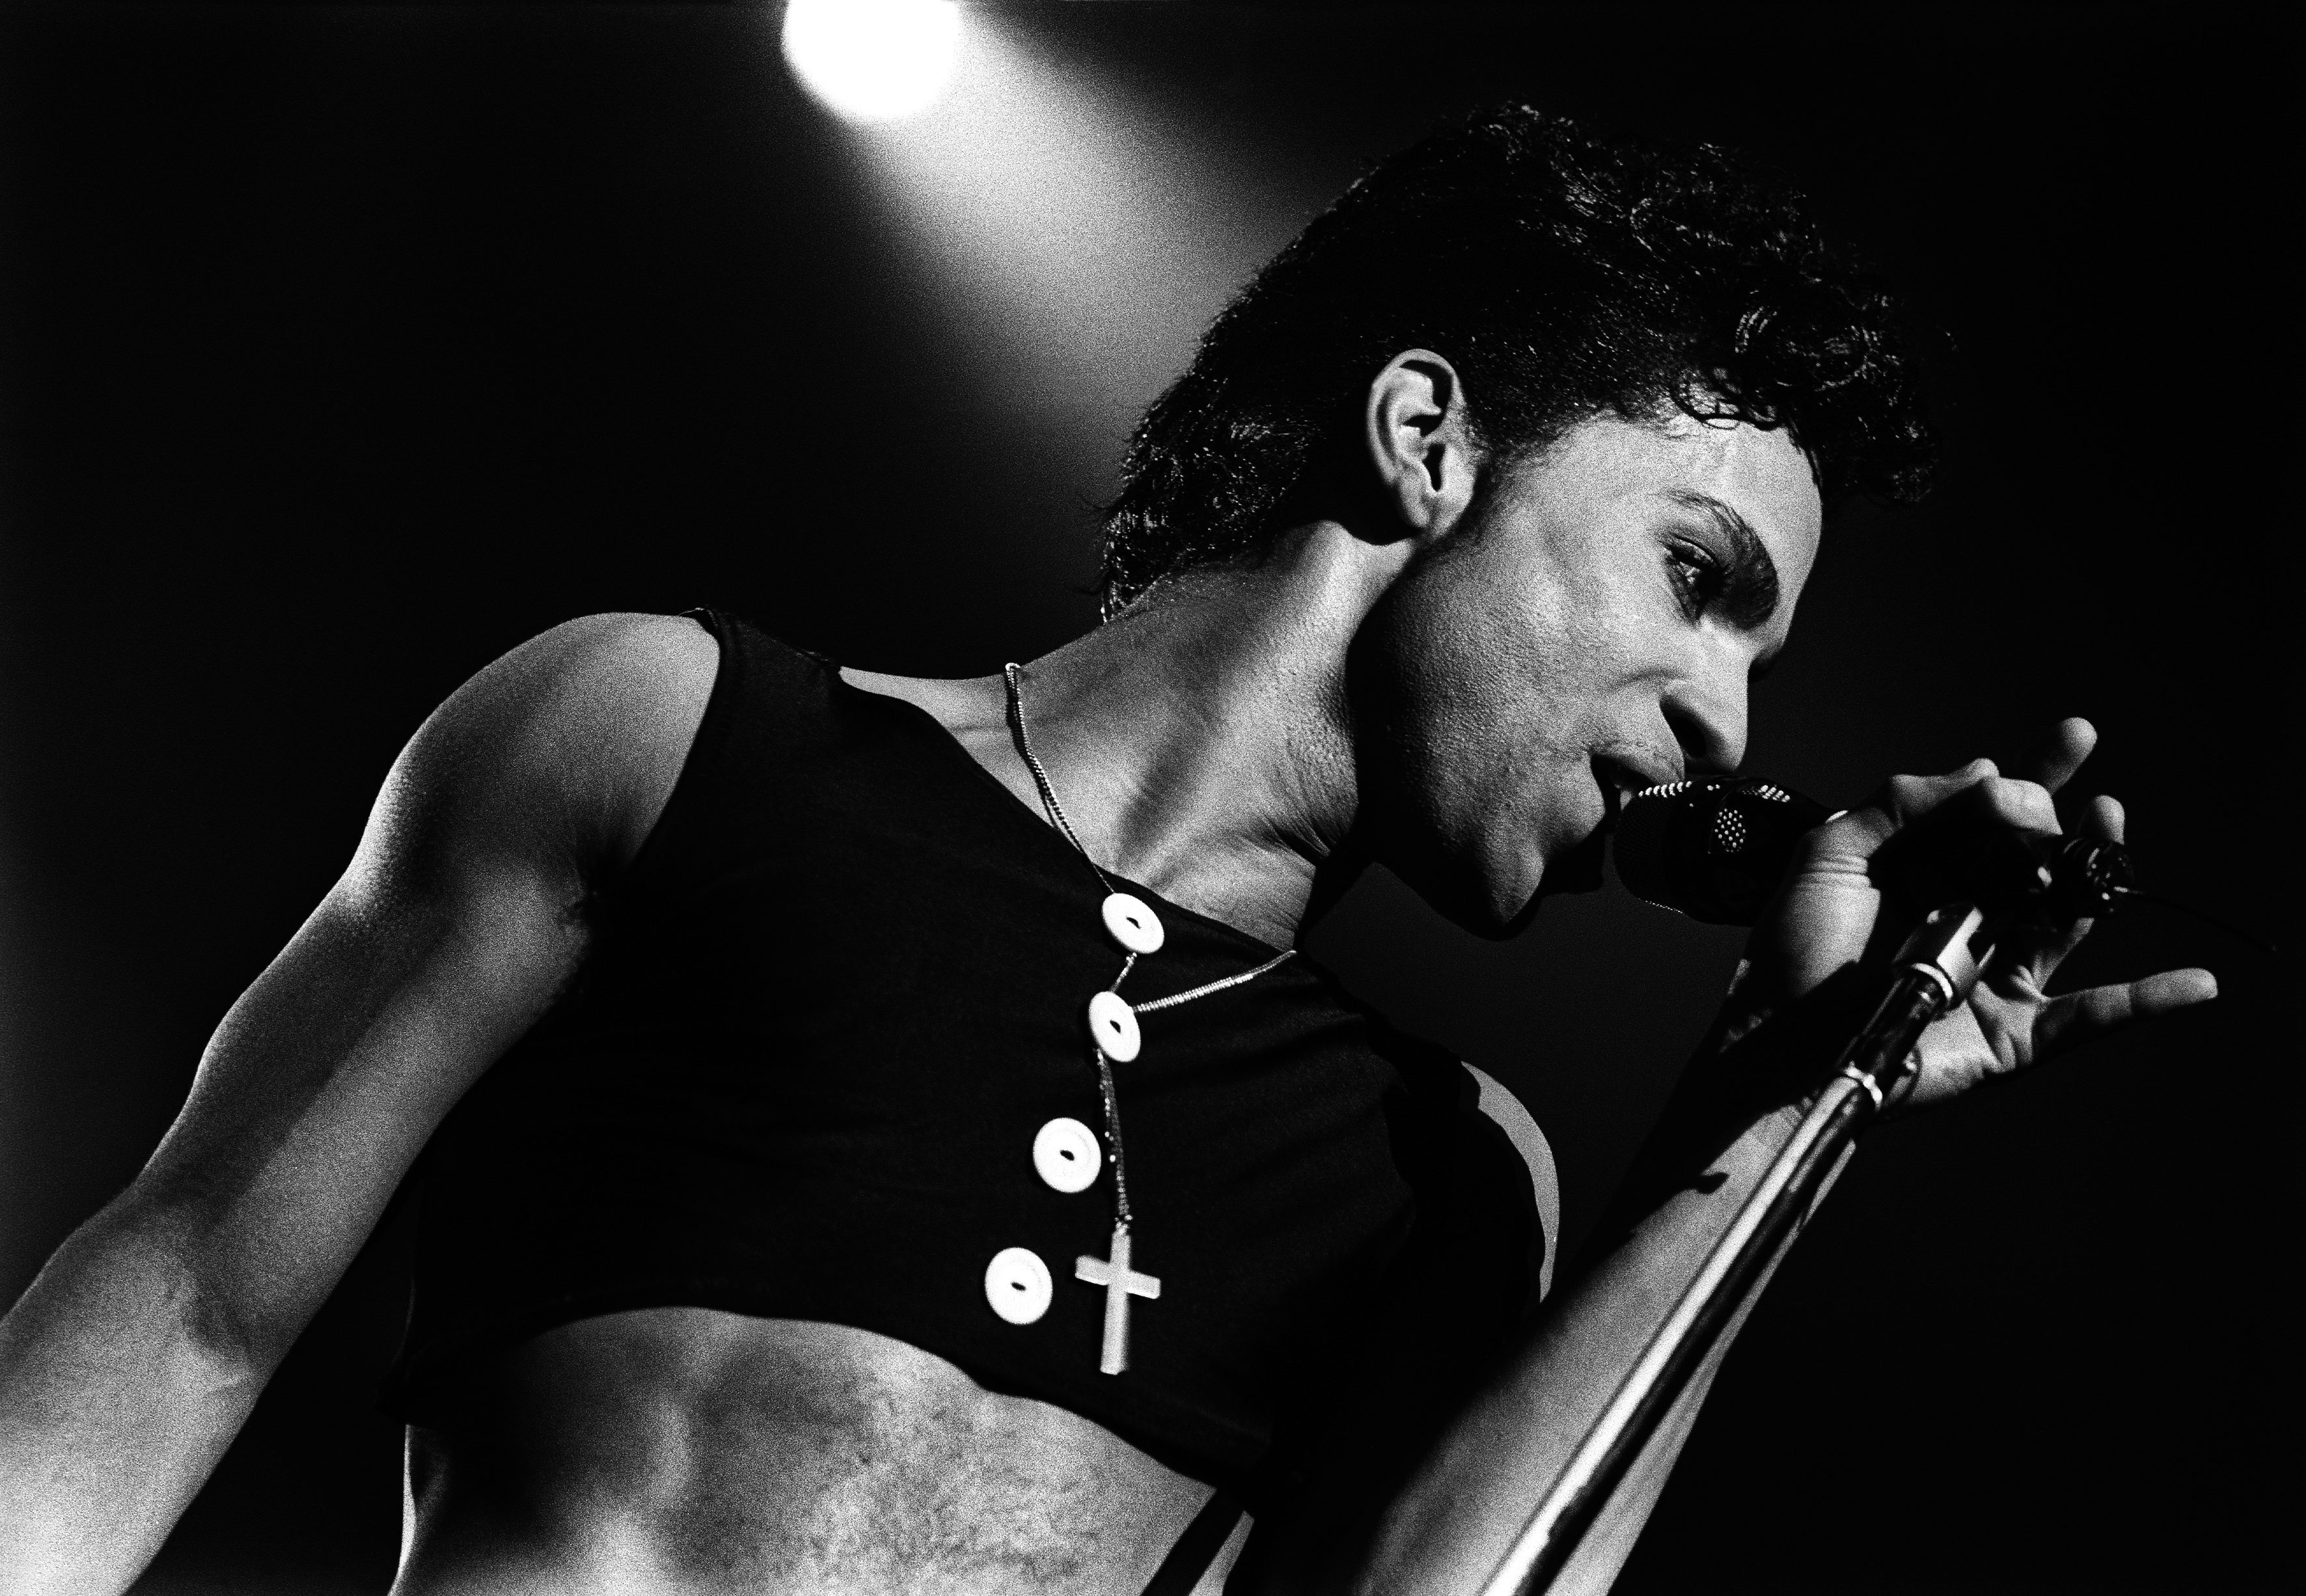 Prince and the Revolution perform on Aug. 17, 1986 in Rotterdam, Netherlands.